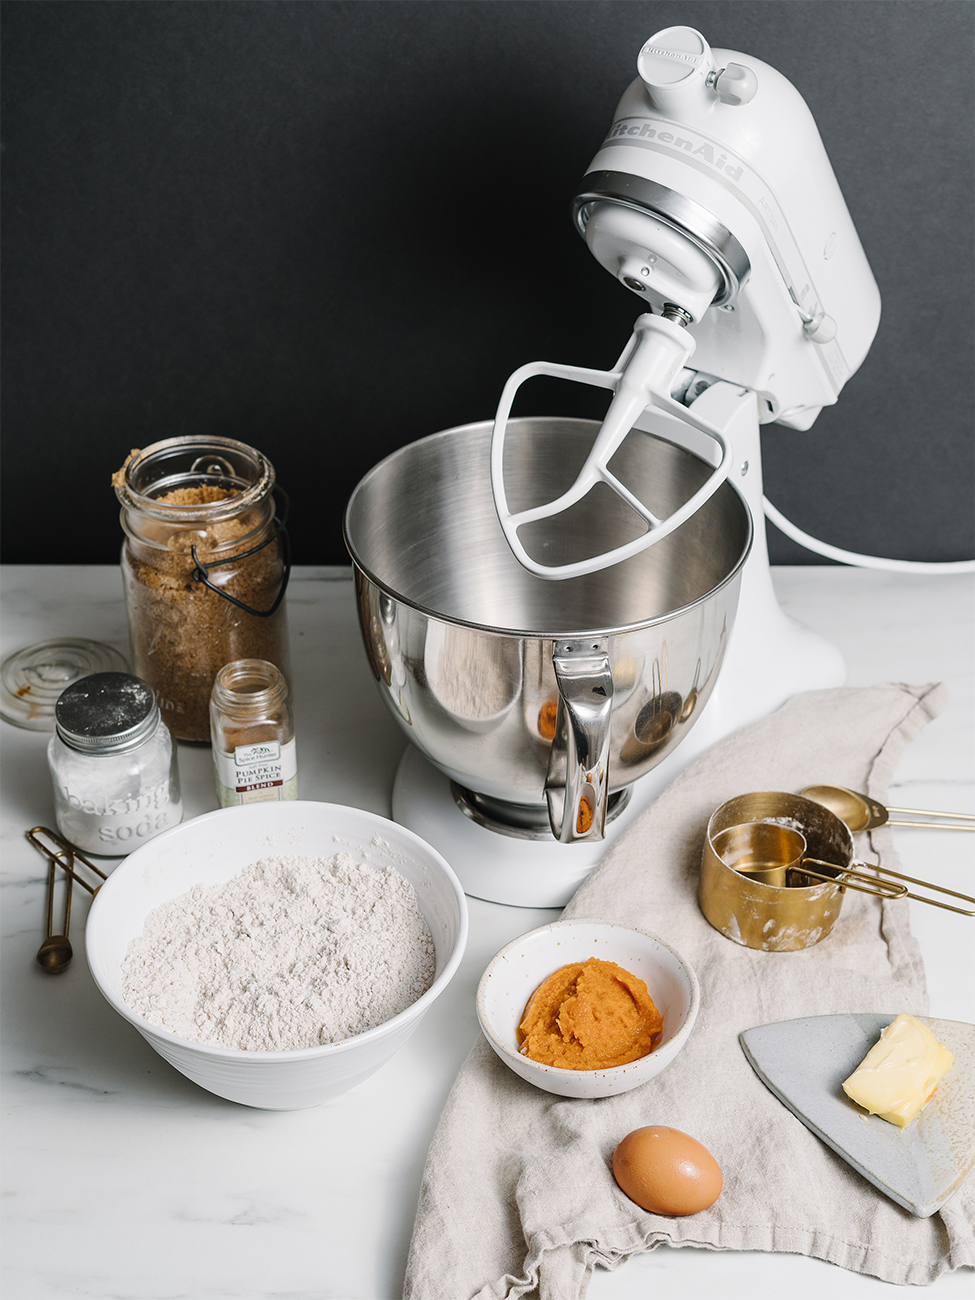 Ingredients and a mixer to make Pumpkin Spice Cinnamon Rolls